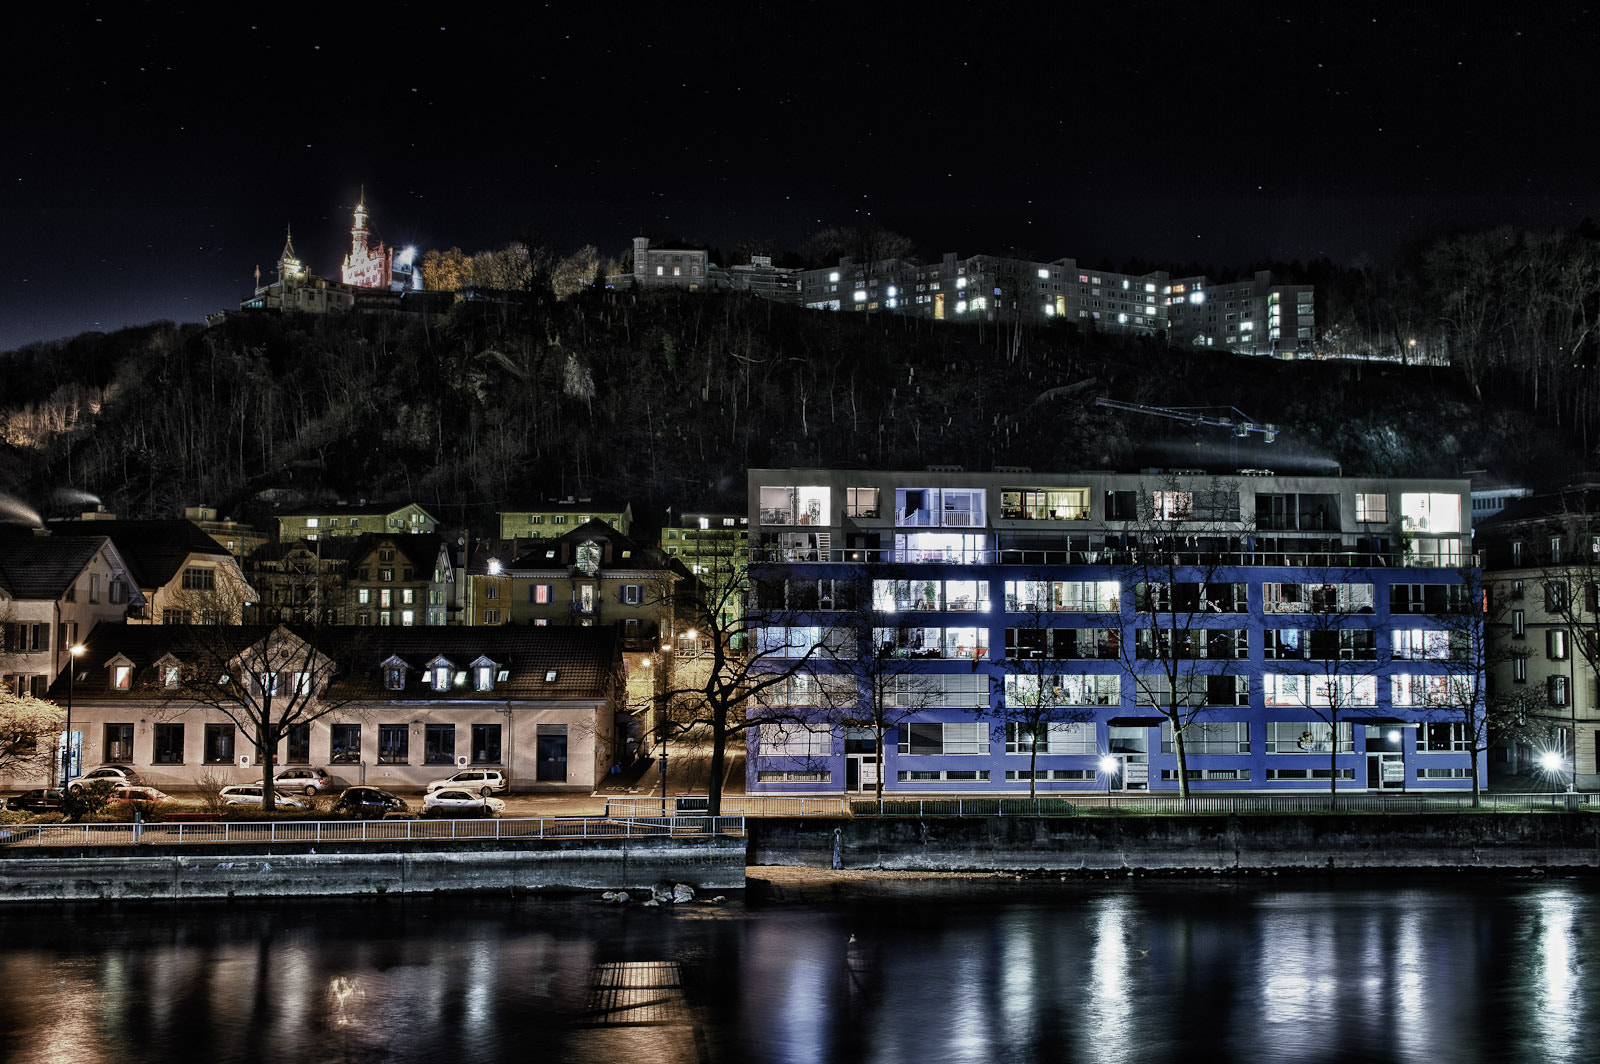 Photograph Winter Night in Lucerne by Martin Weibel on 500px